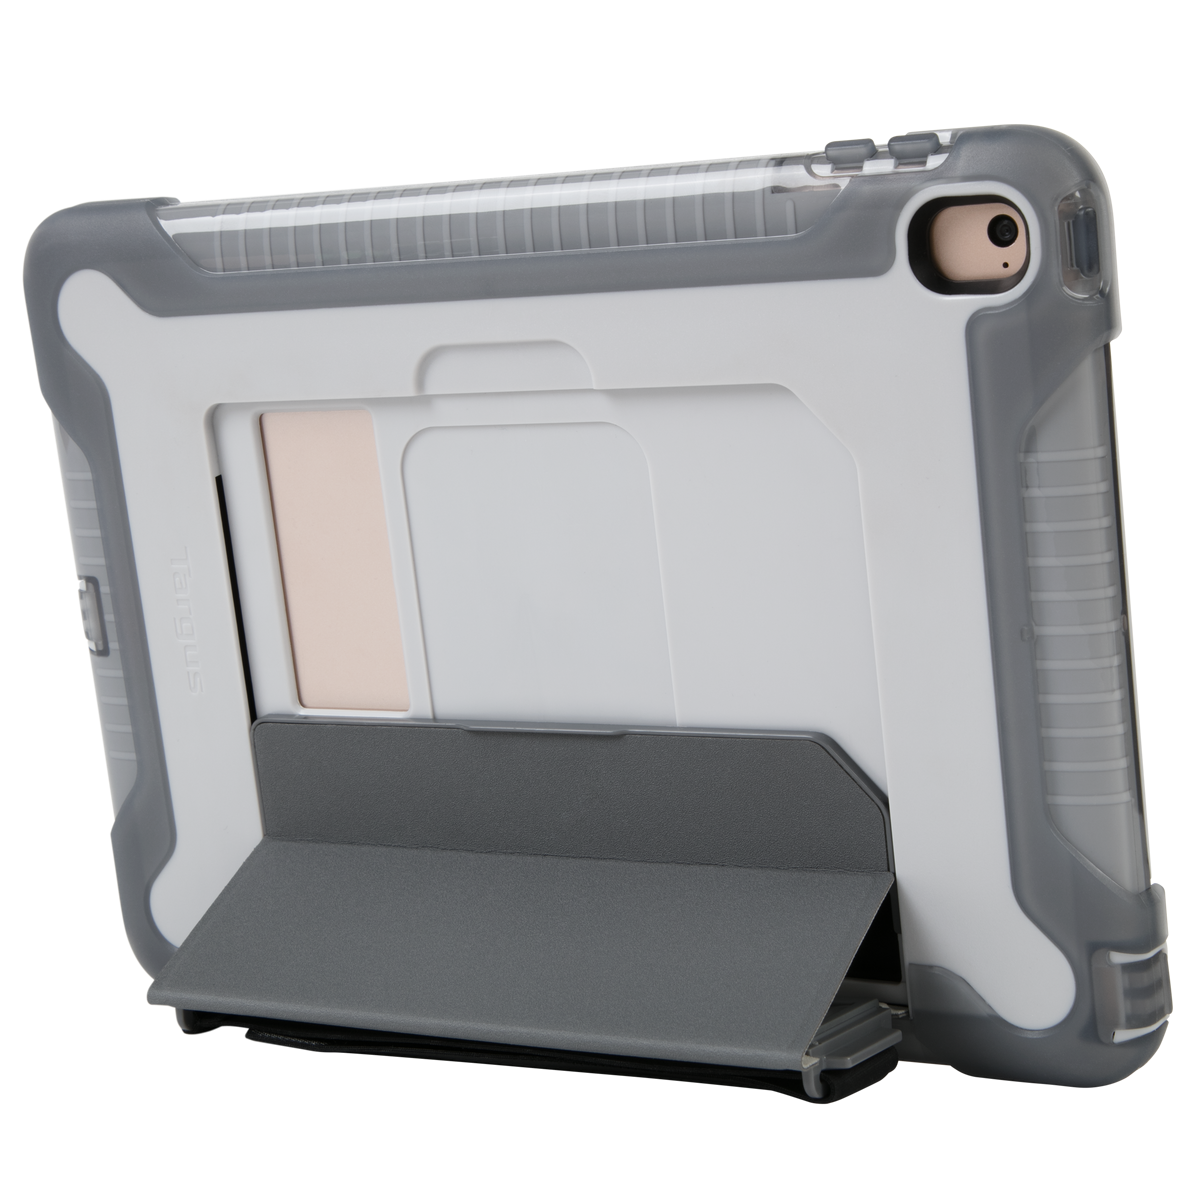 "Picture of SafePort Rugged Tablet Case for iPad 9.7""(2017/2018), iPad Pro 9.7"", iPad Air 2"